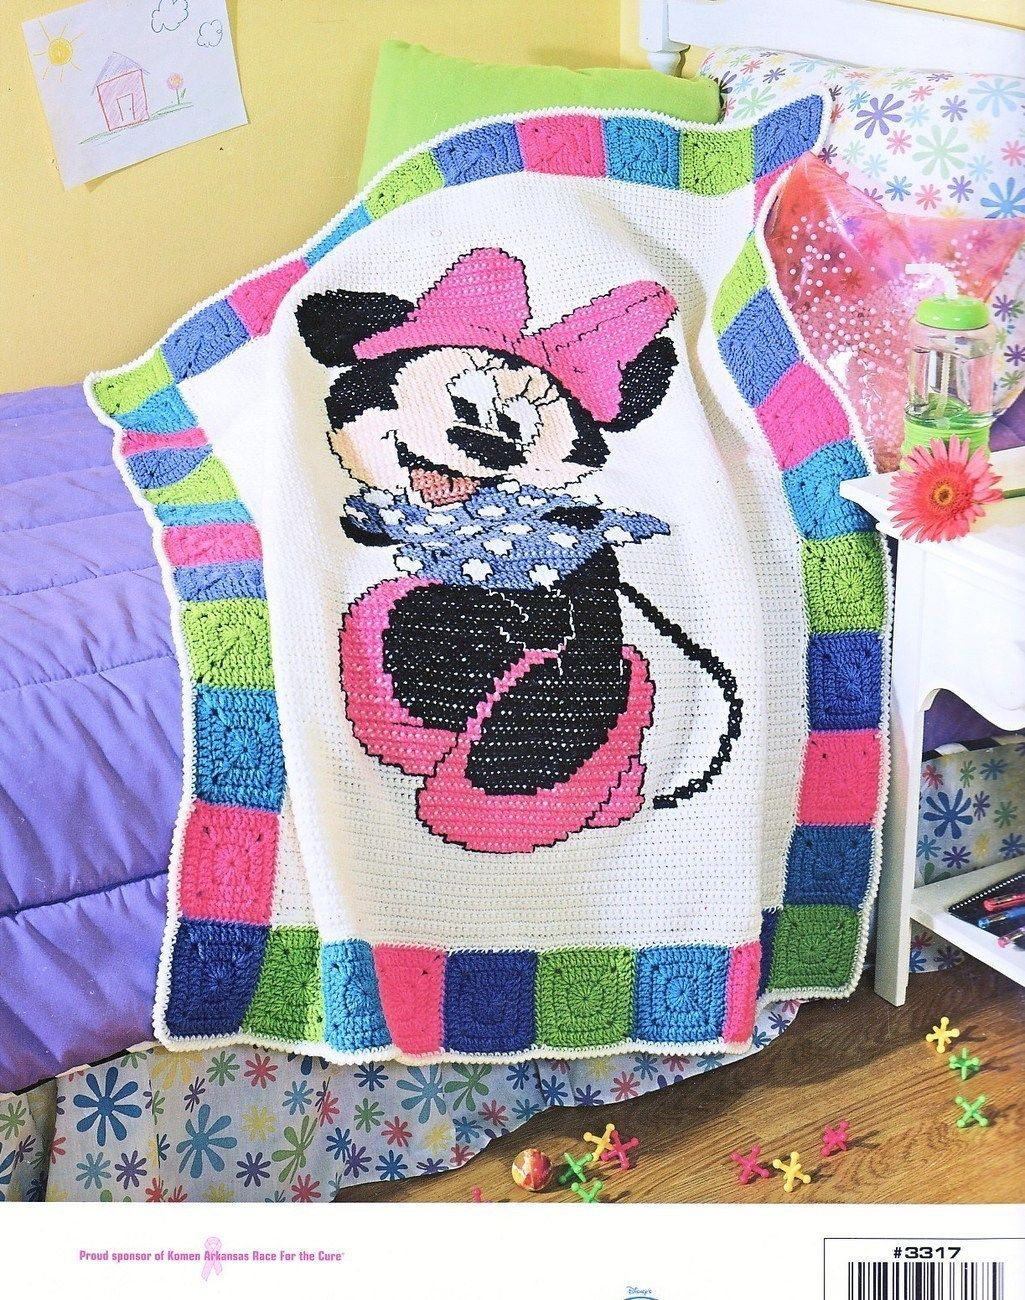 Mickey minnie afghans crochet patterns book disney crochet mickey minnie afghans crochet patterns book disney bankloansurffo Choice Image